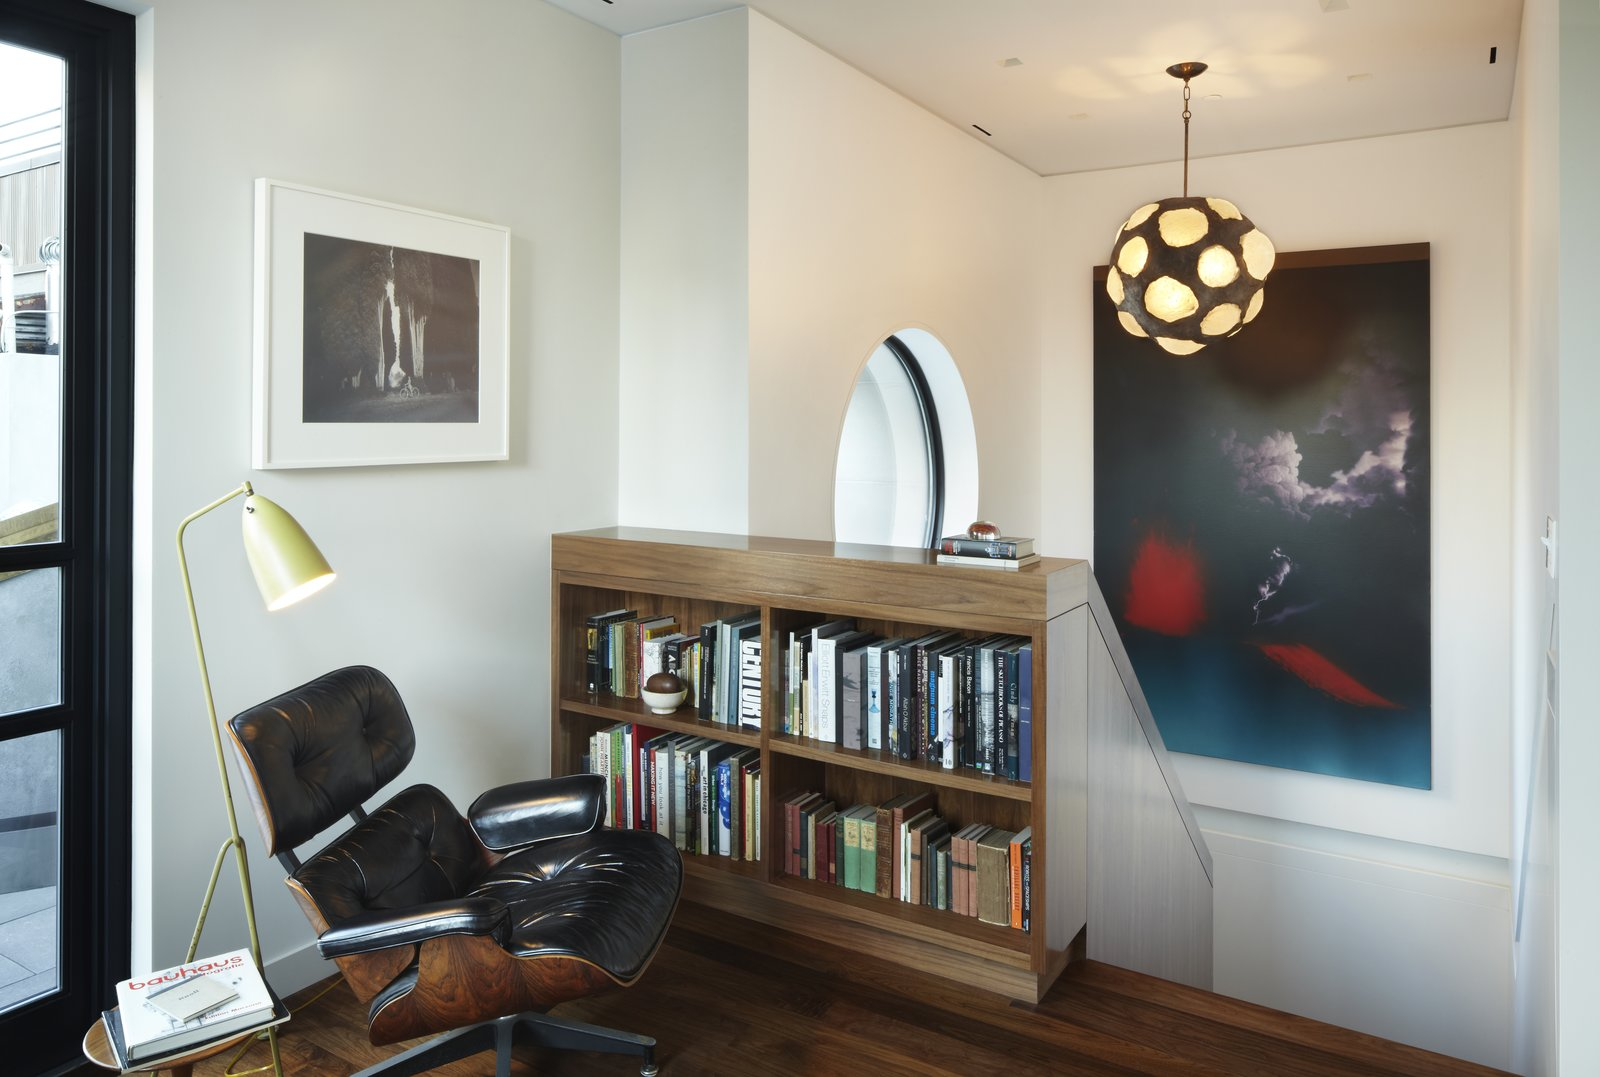 The upper landing in the White Street Residence provides a pausing point when going to and from the roof garden.  A walnut bookshelf, an extension of the walnut knee wall below stores a collection of the owner's art books.  The large circular window which overlooks the roof garden can be seen in the background. A vintage Grasshopper floor lamp by Greta Grossman provides reading light while relaxing in the Eames 670 lounge chair.  White Street Residence by pulltab